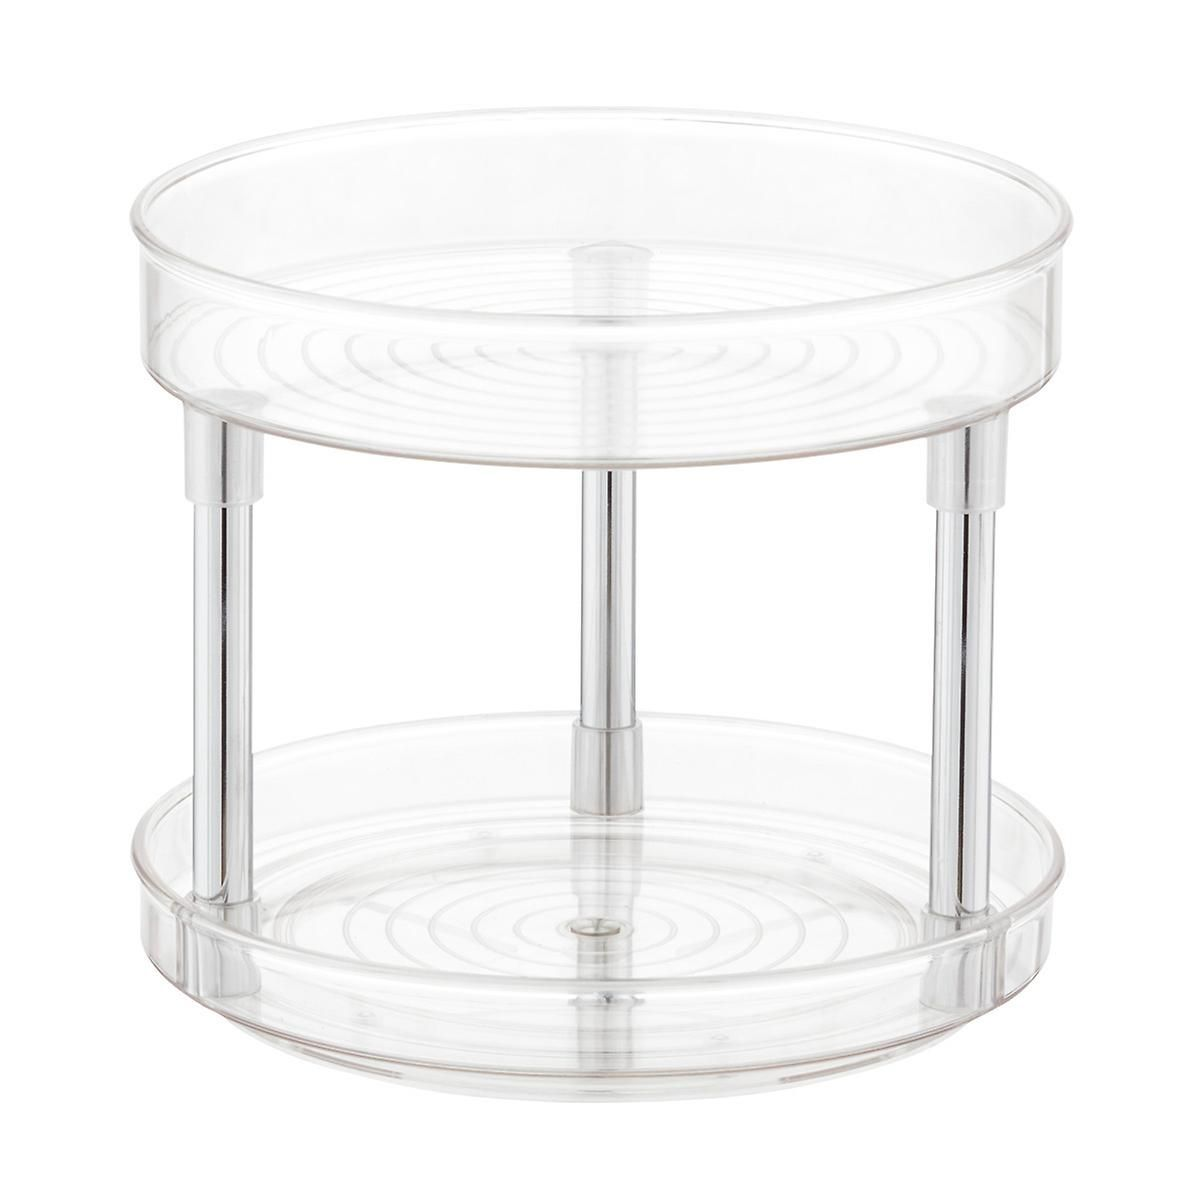 Idesign Linus 2 Tier Lazy Susan Russ 1 3 In 2019 Lazy Susan Container Store Spice Jars